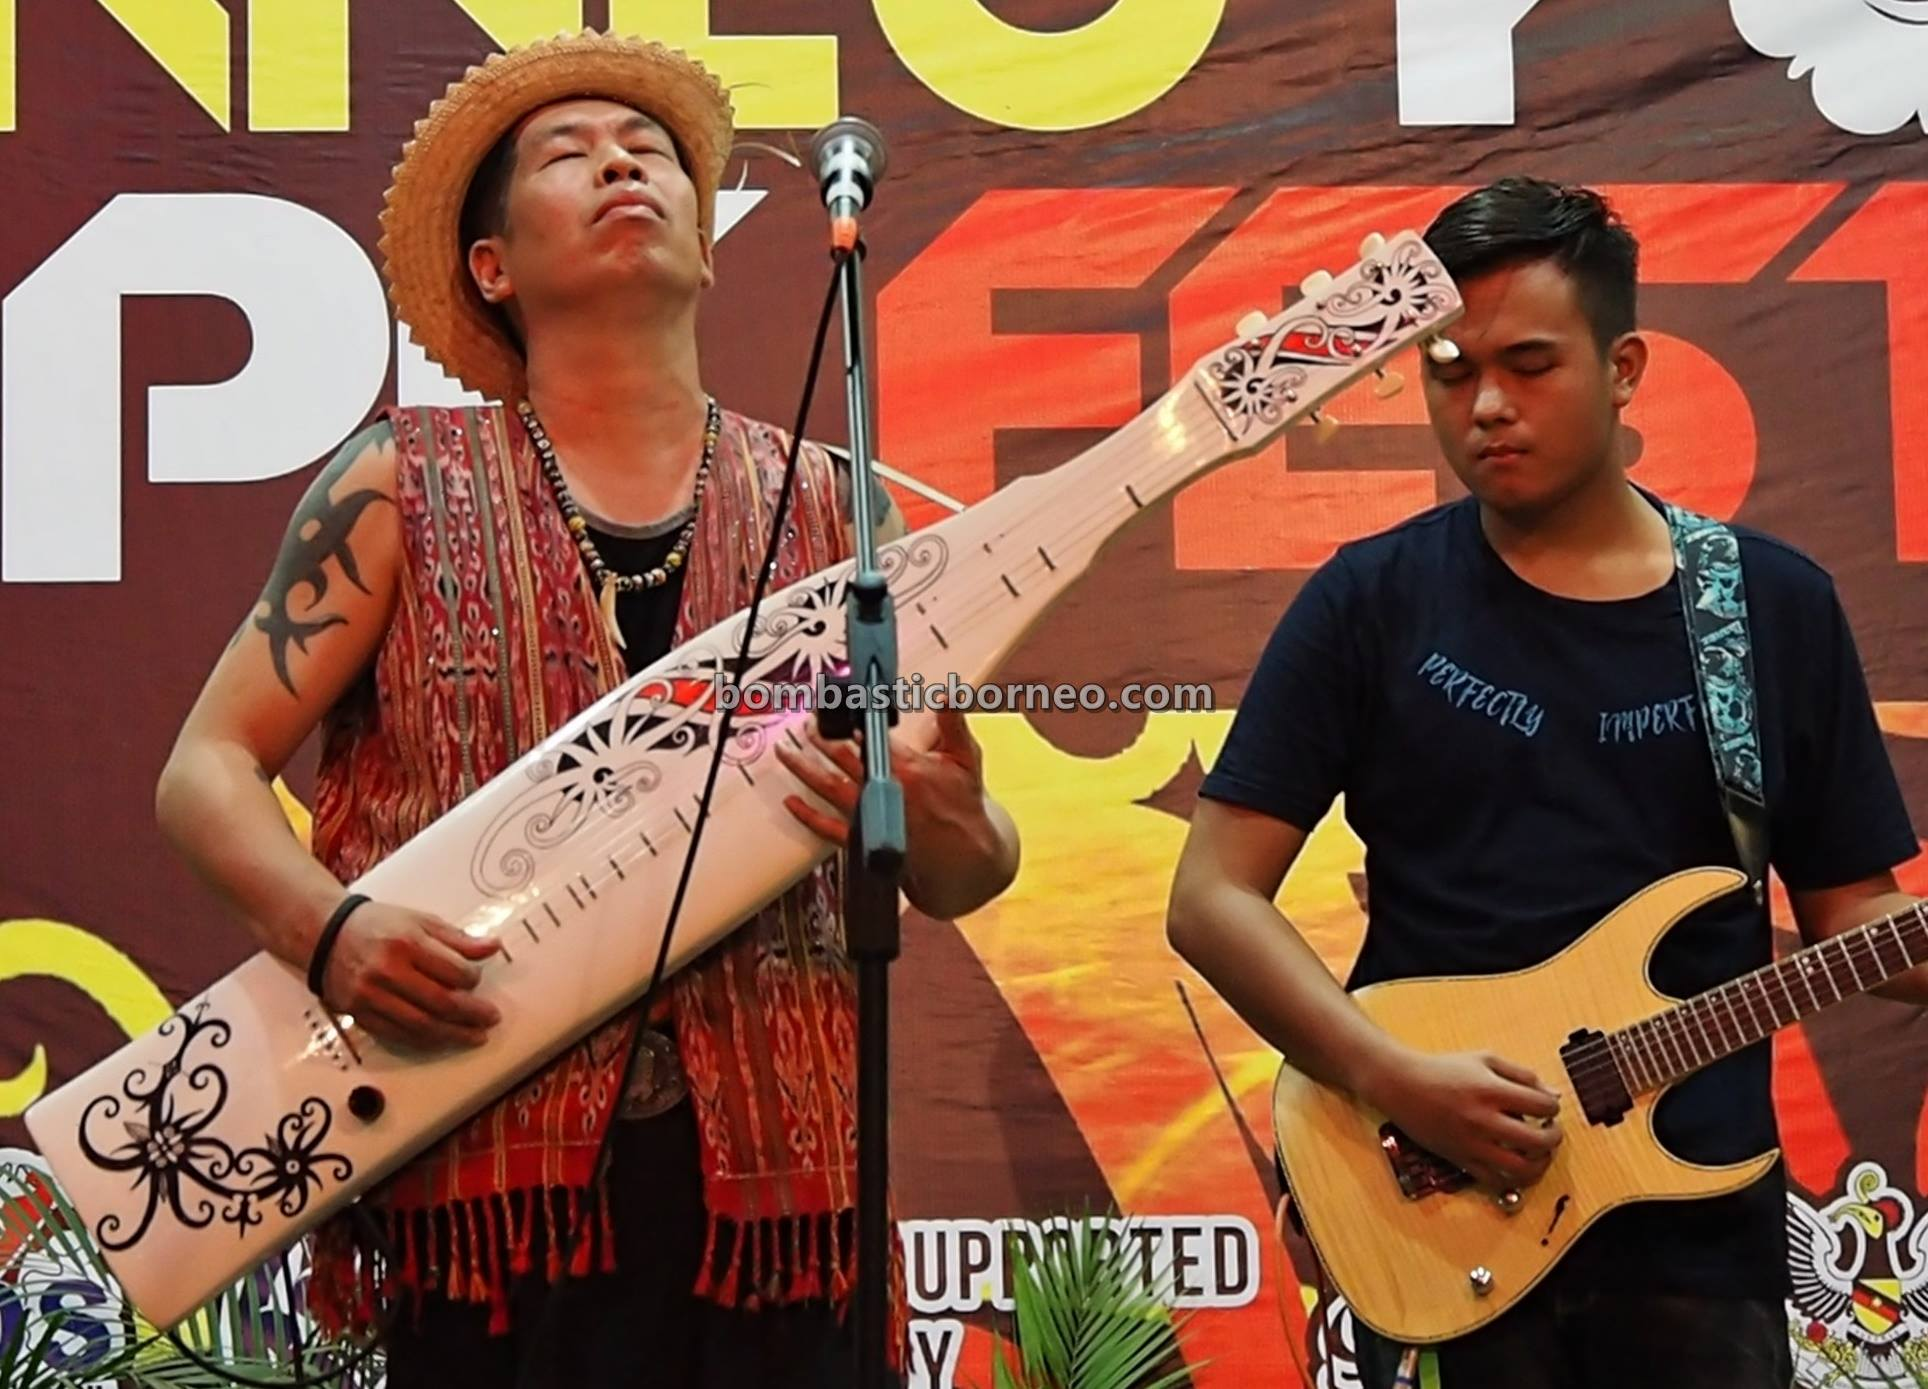 Youth Sape Festival, traditional, backpackers, culture, Ethnic, indigenous, orang ulu, musical instrument, Sibu, One Malaysia Cultural Village, Tourism, travel guide, 婆罗洲土著音乐文化, 砂拉越达雅吉他, 马来西亚原住民沙贝